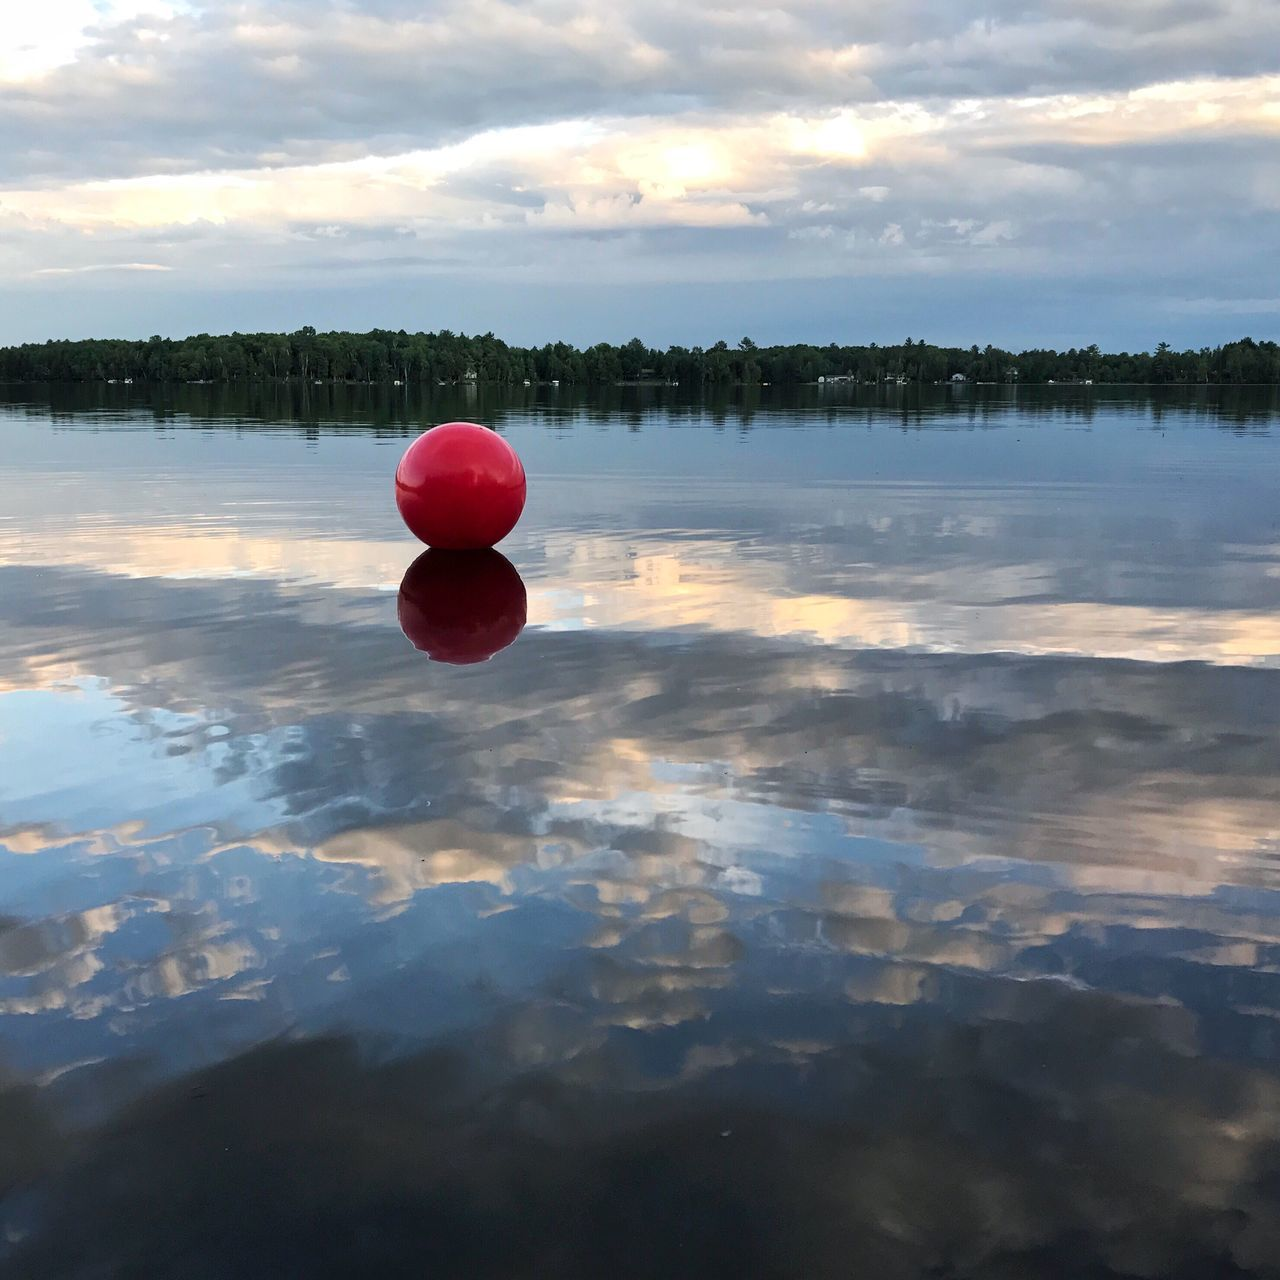 Runaway ball Outdoors Iphonography Reflection Water Lake Red Cloud - Sky Beauty In Nature Iphoneonly